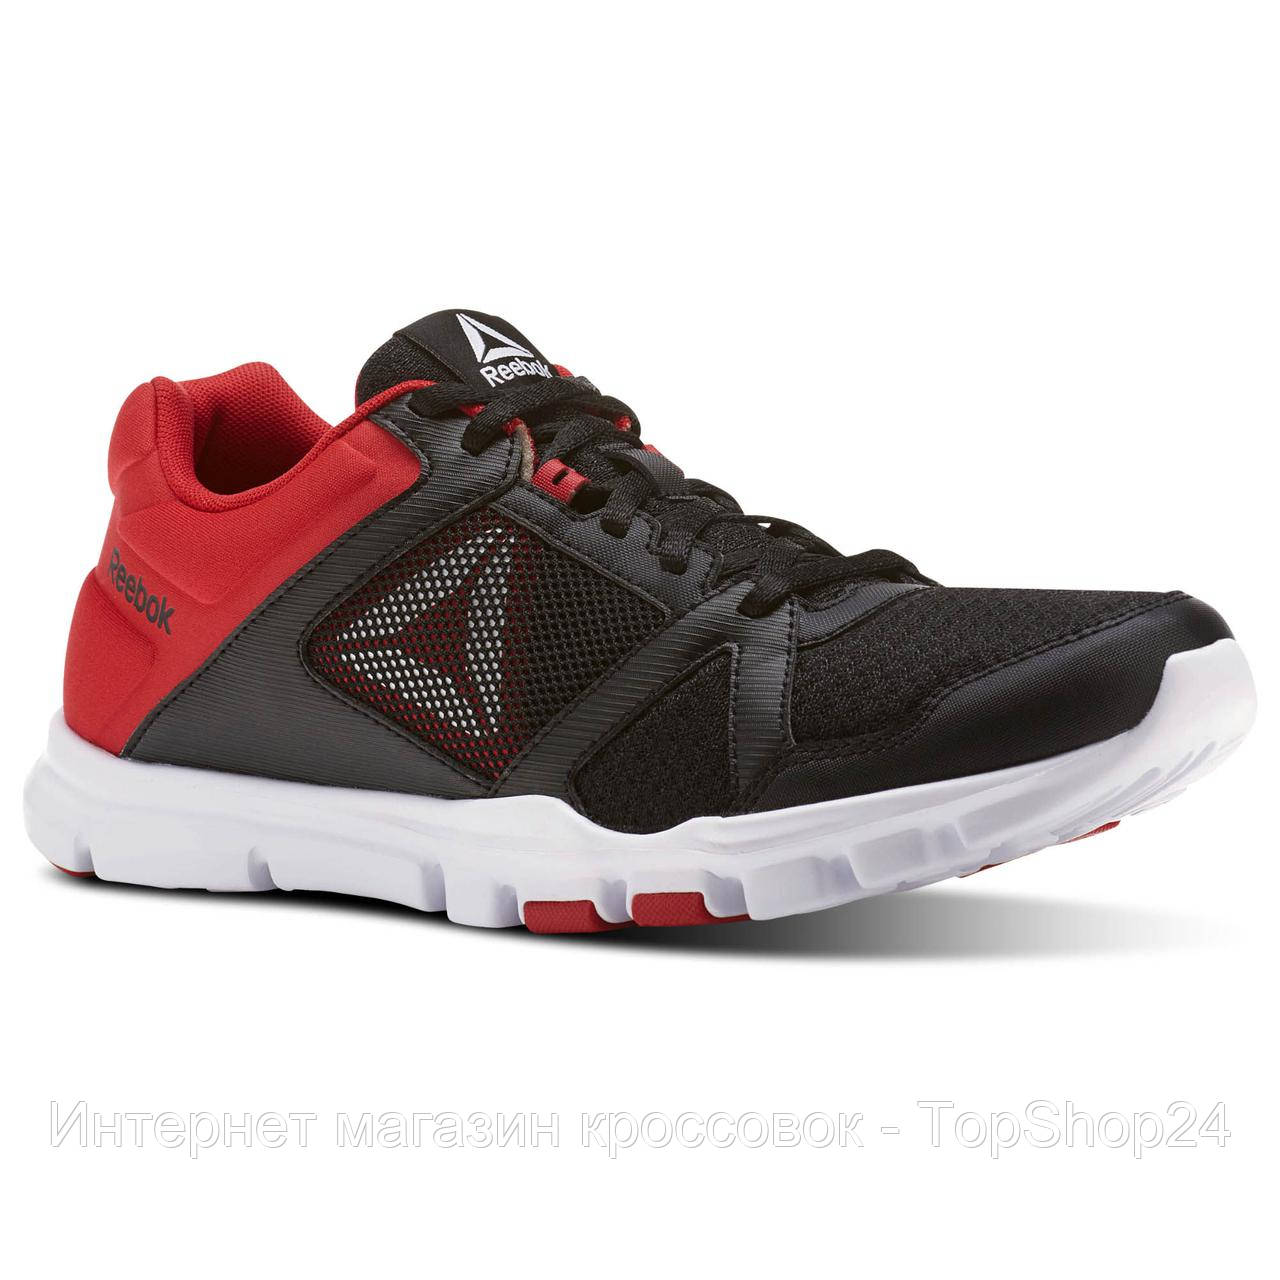 Кроссовки Reebok Yourflex Train 10 Mt BS9871